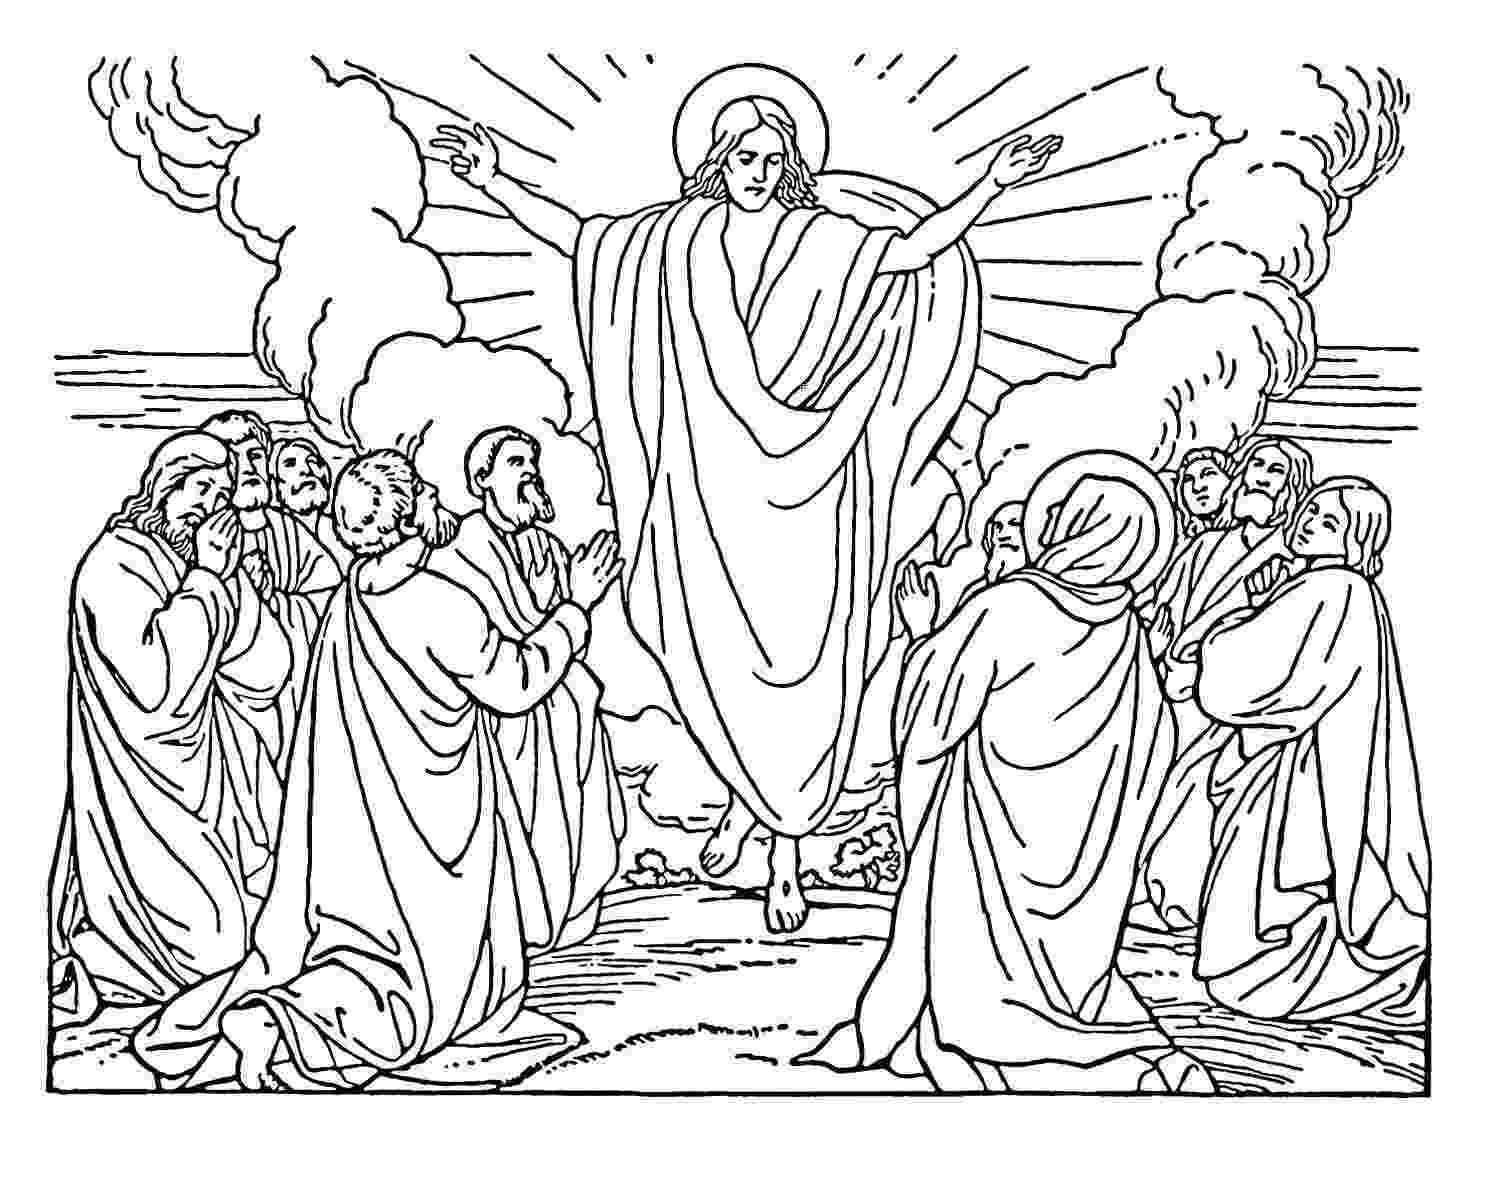 bible coloring pages for kids free printable bible coloring pages for kids pages kids coloring bible for